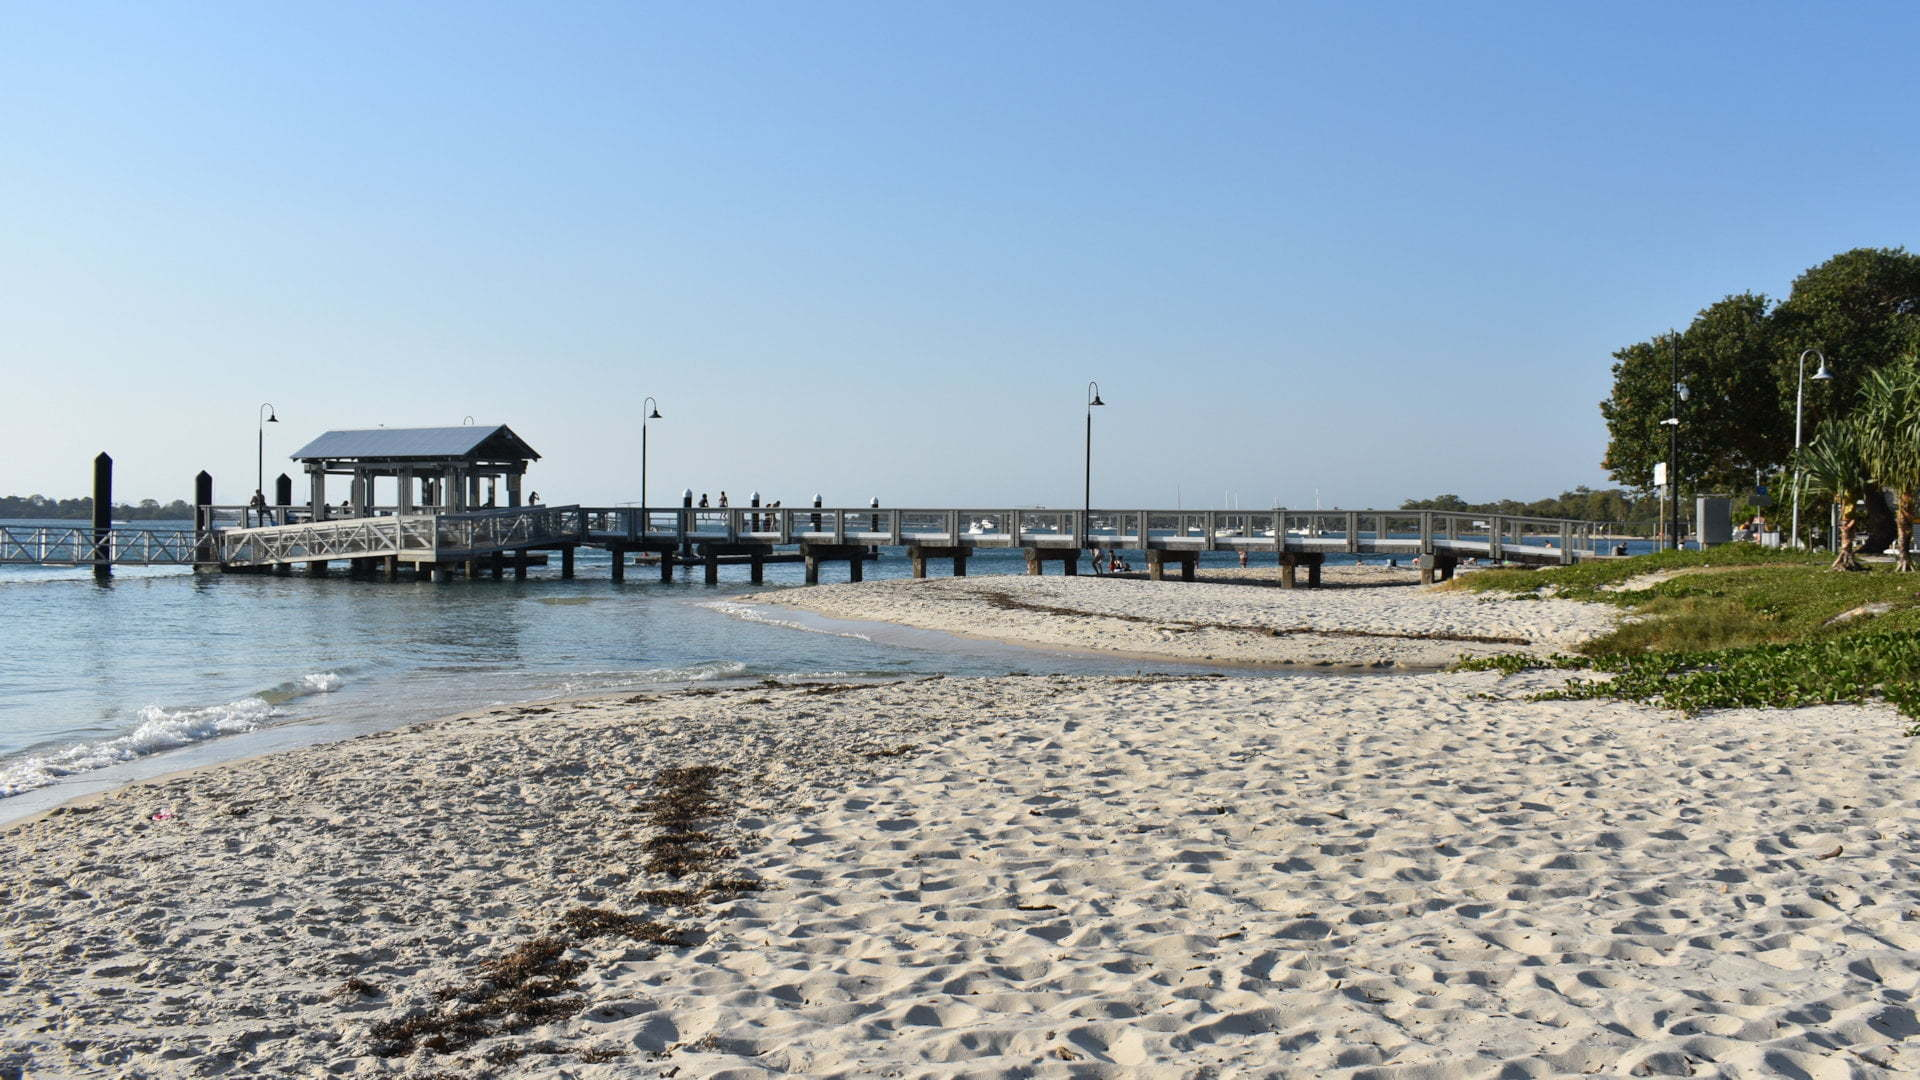 Jetty and sandy beach, at Bongaree Jetty on Bribie Island